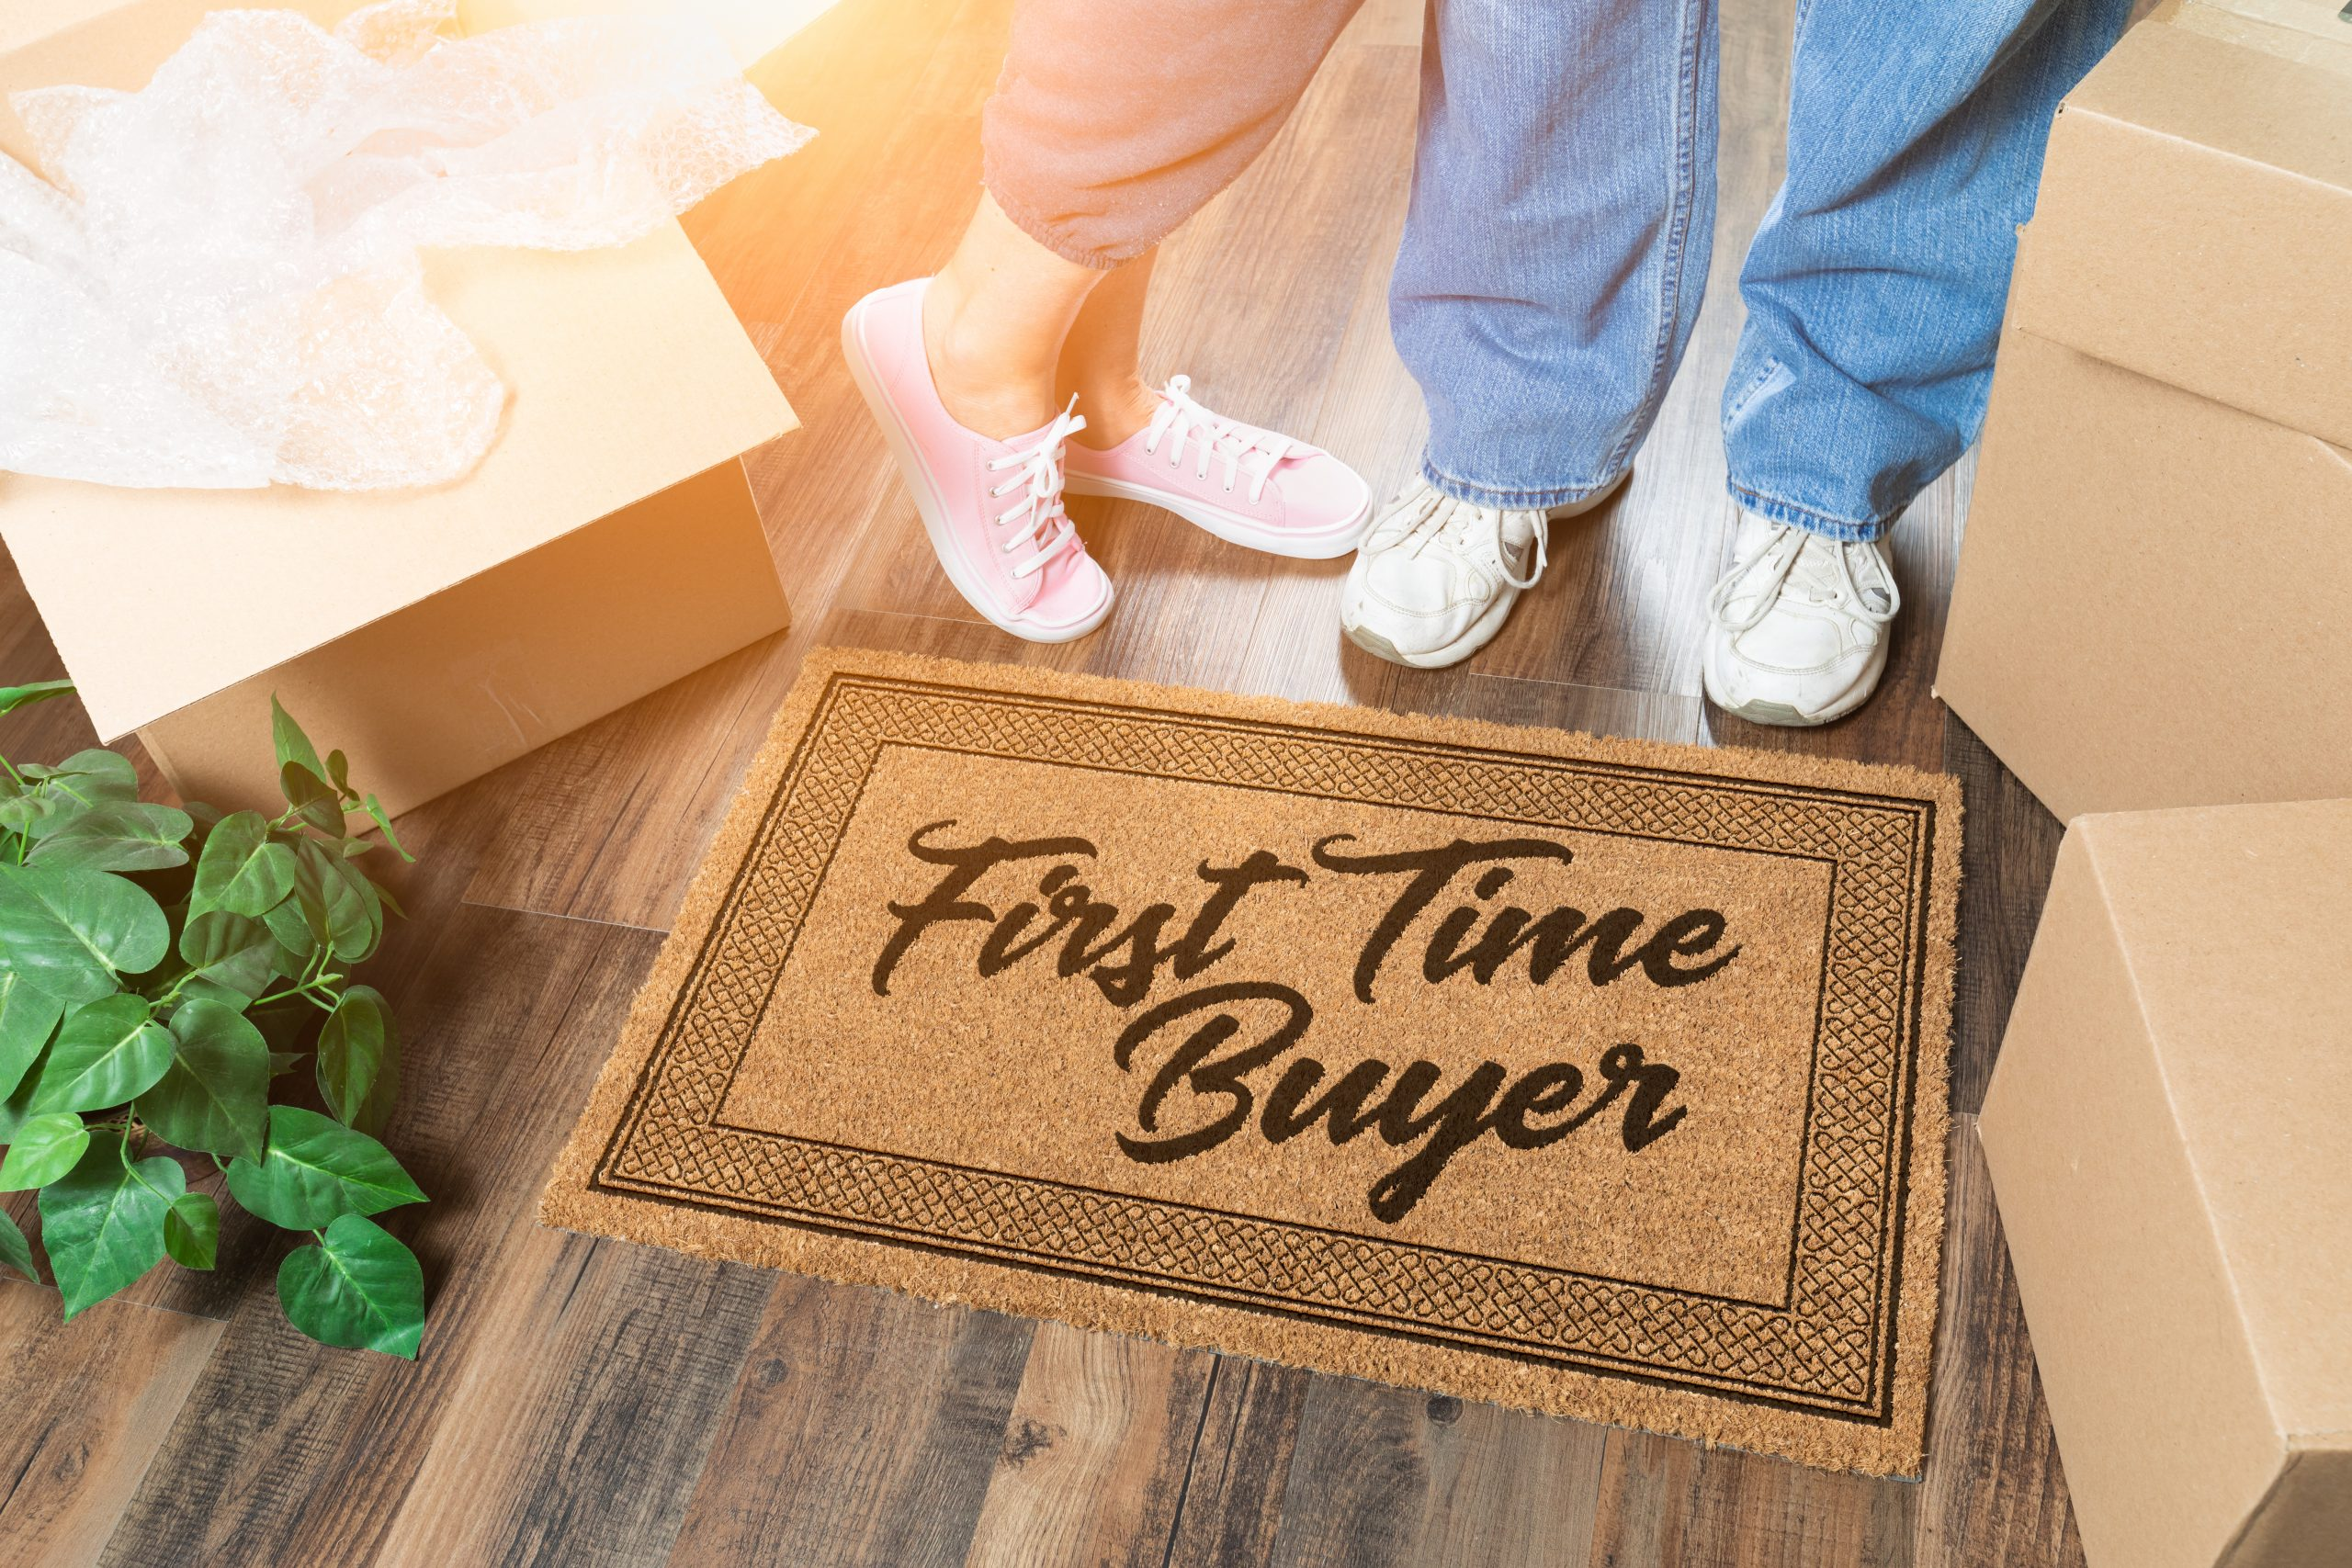 5 Habits Of A First Home Buyer - Good & Bad